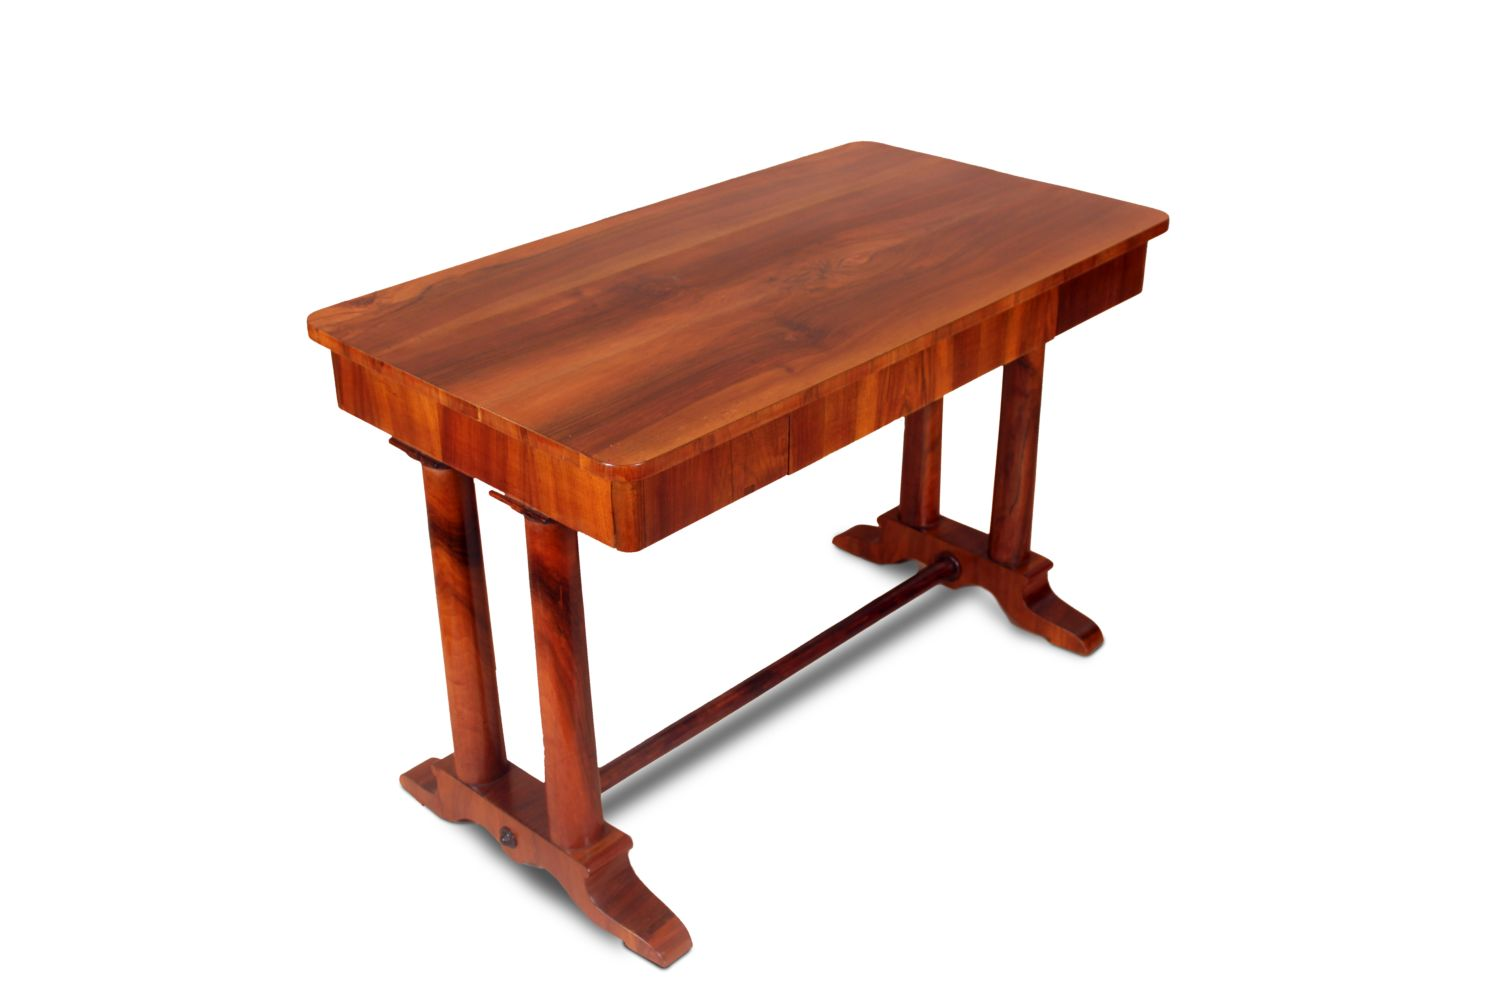 #115 Biedermeier Table | Biedermeiertisch Image